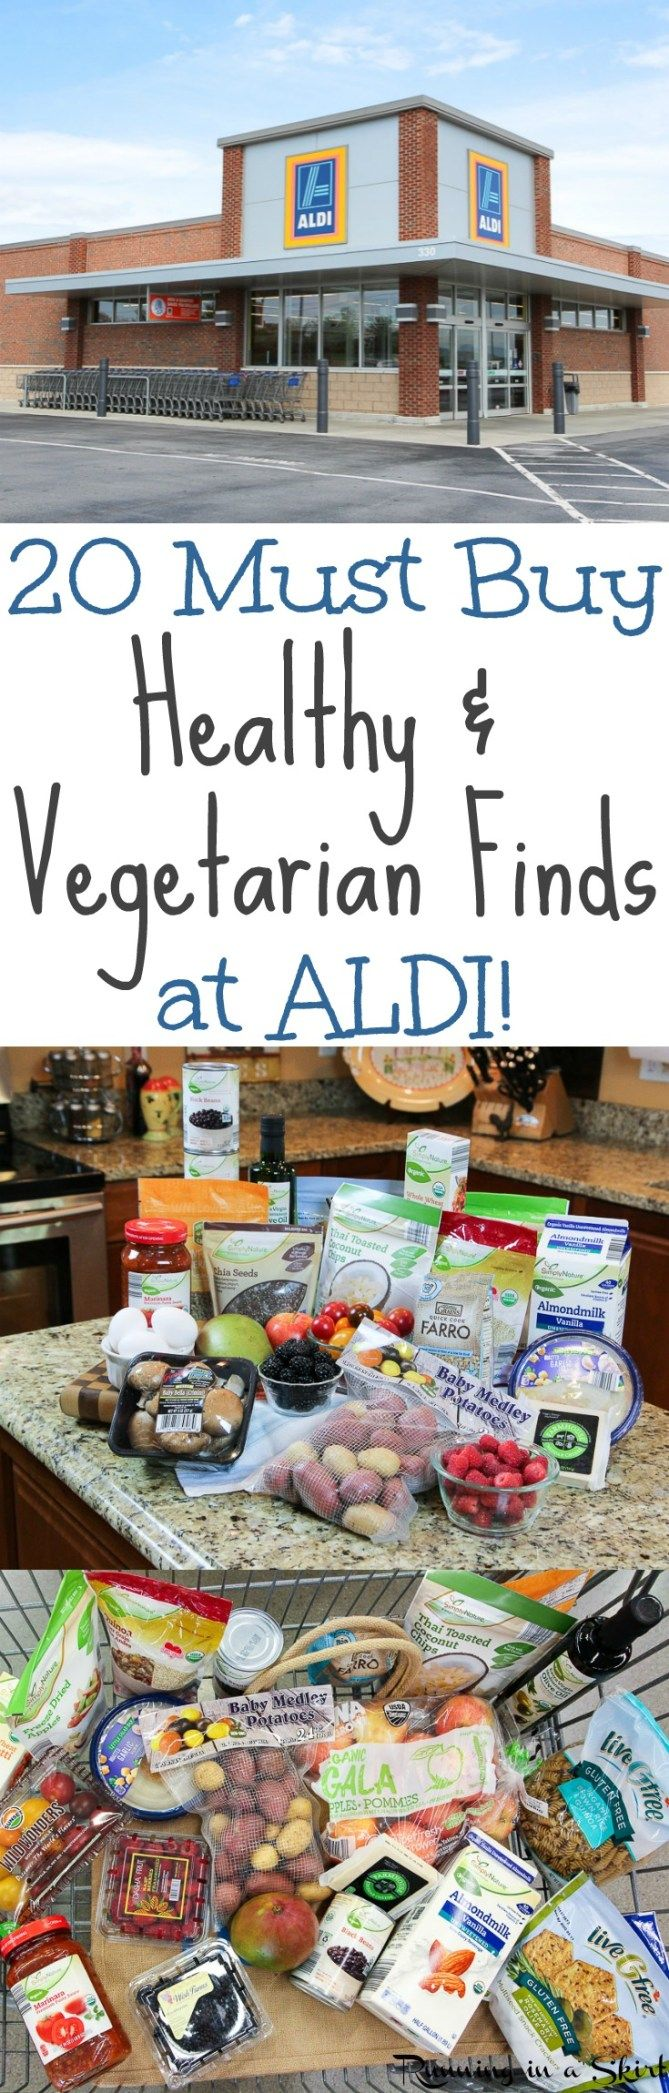 20 Must Buy Healthy Finds at ALDI! What to buy for a clean eating, vegetarian (vegan options!) shopping list at a budget. Must haves, tips and hacks to get the most out of your shopping trip.  Include